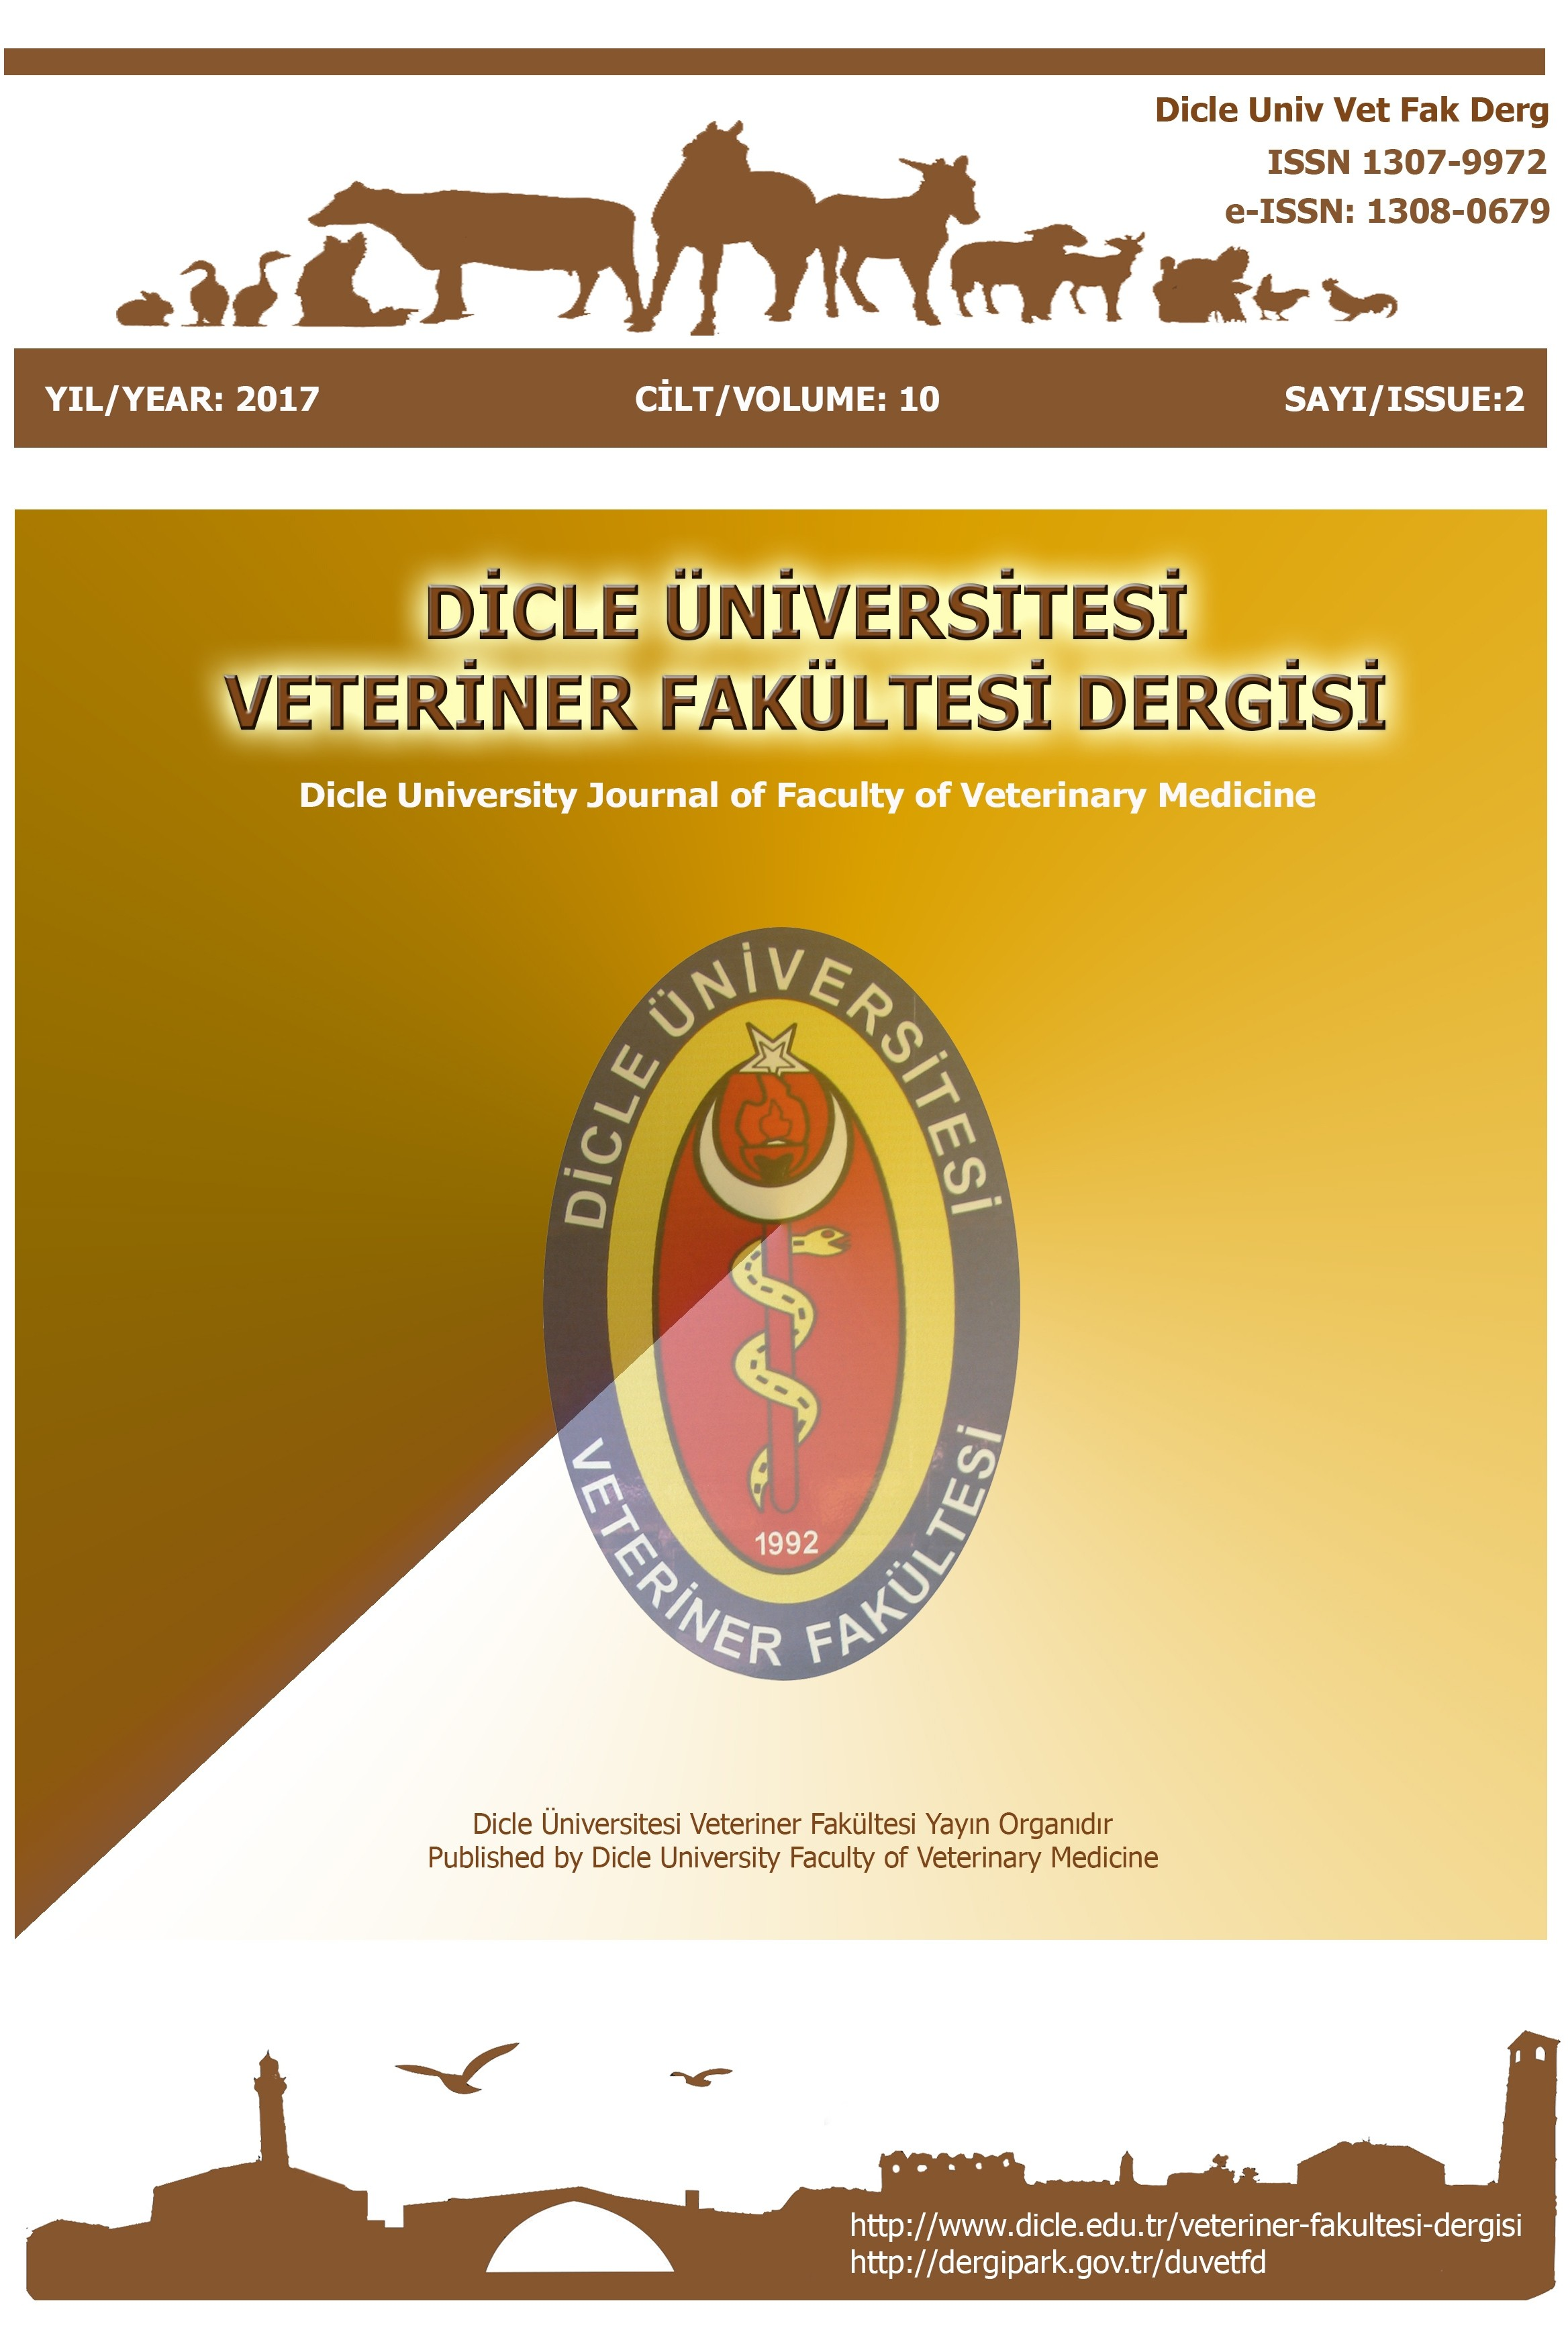 The Journal of Faculty of Veterinary Medicine